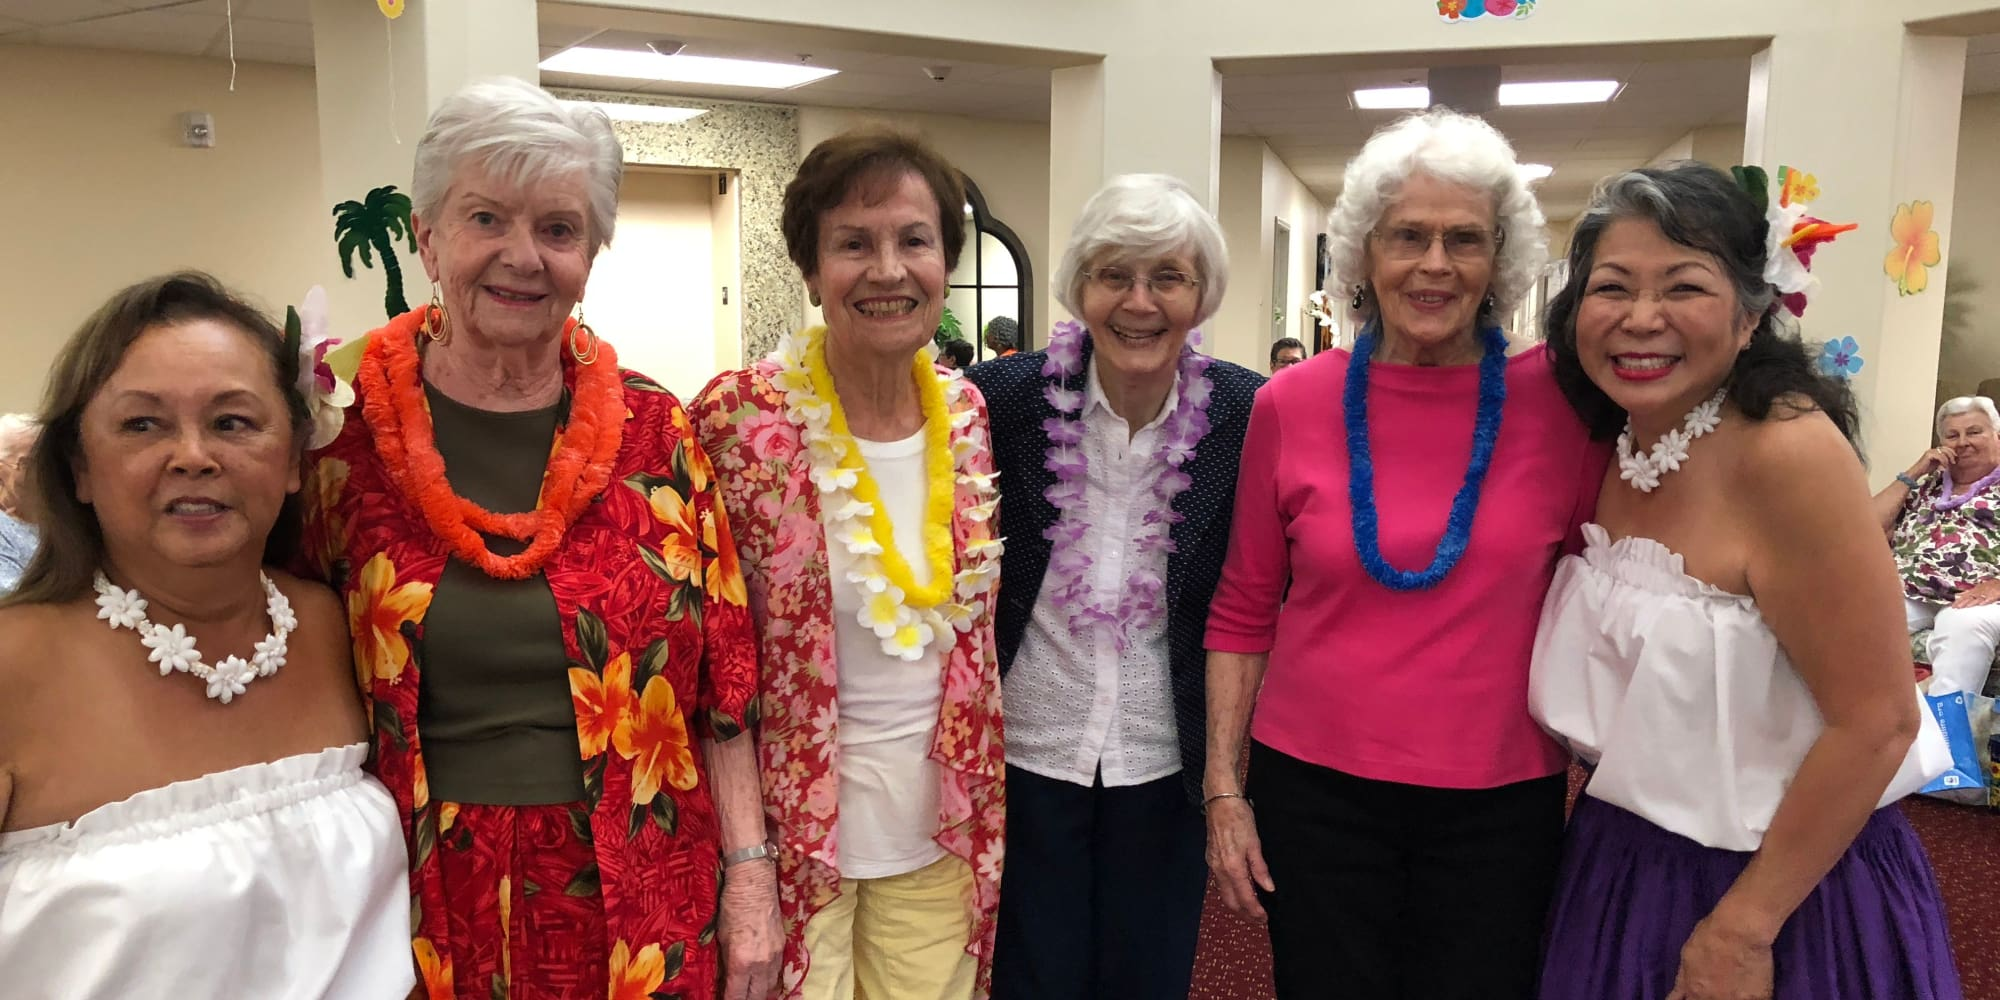 Residents dressed in a tropical theme at The Palms at La Quinta Assisted Living and Memory Care in La Quinta, California